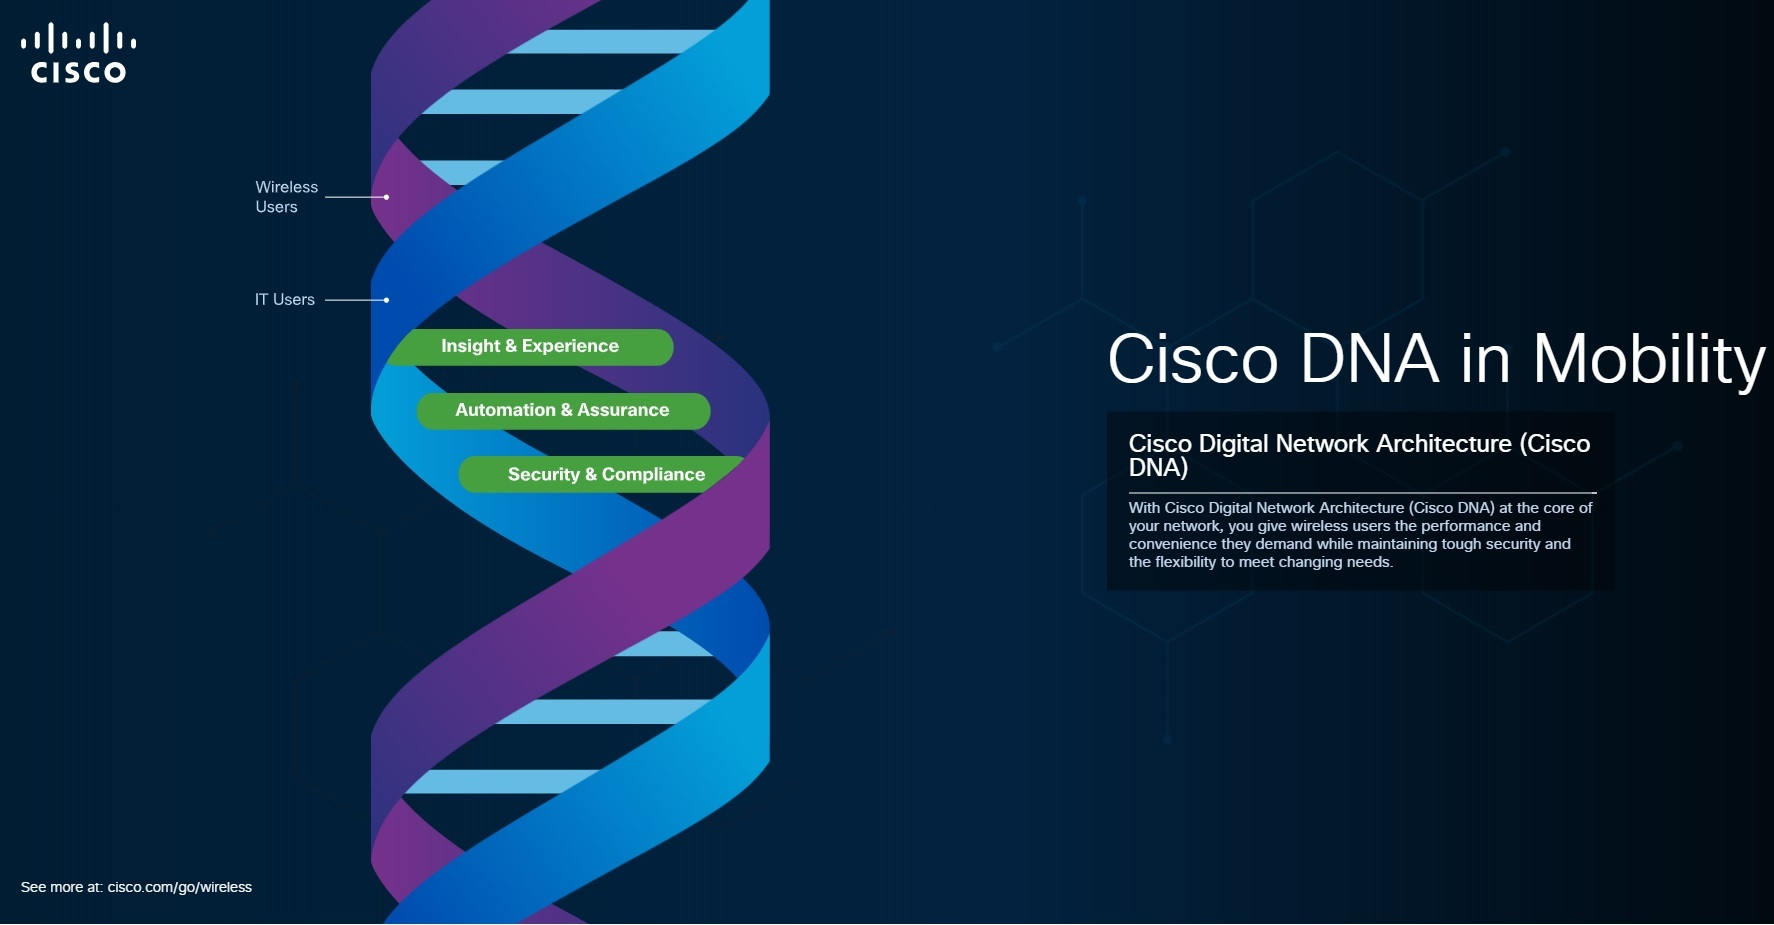 CISCO DNA in Mobility screen grab